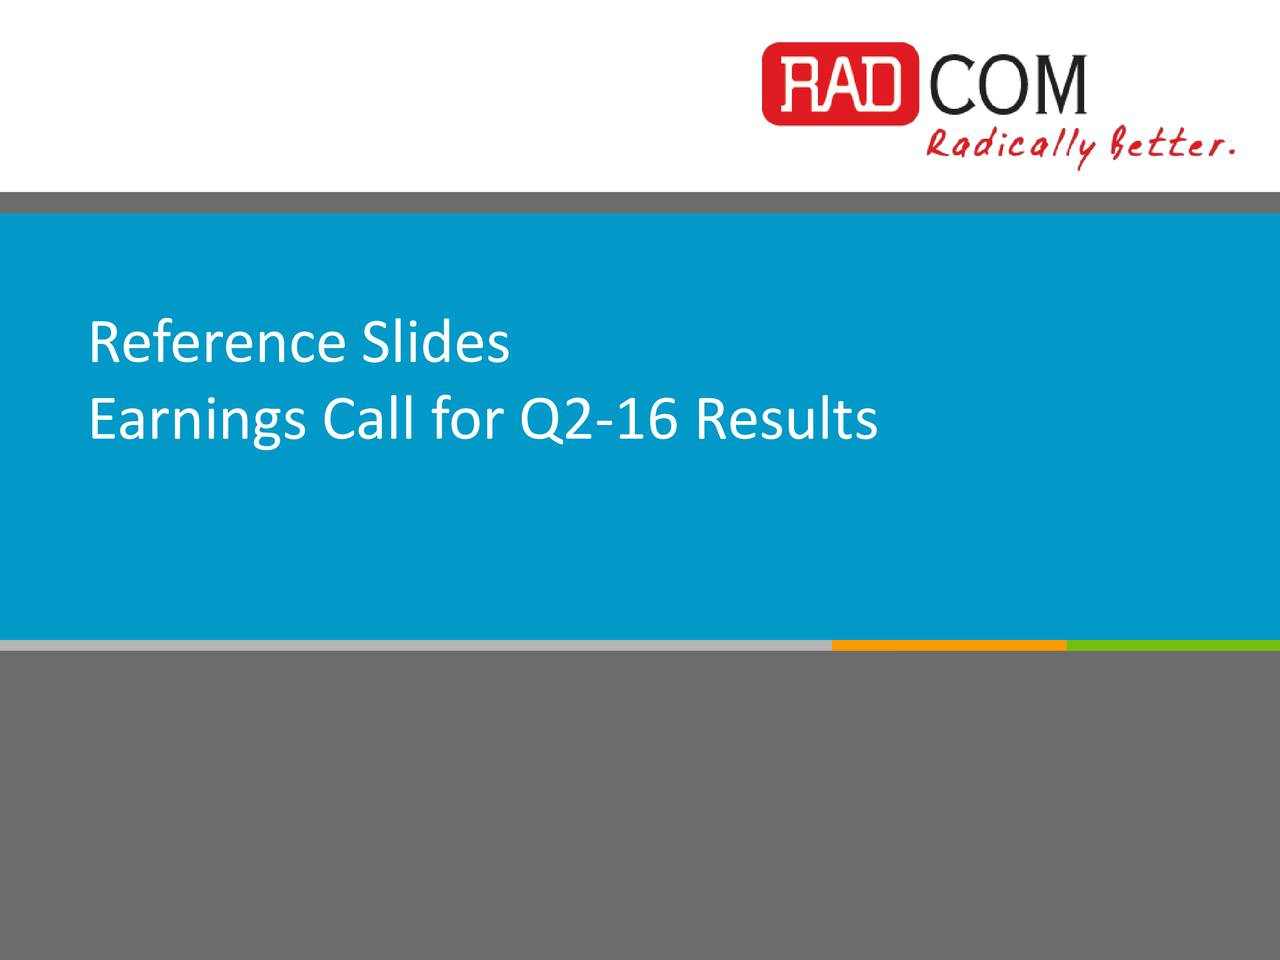 Earnings Call for Q2-16 Results